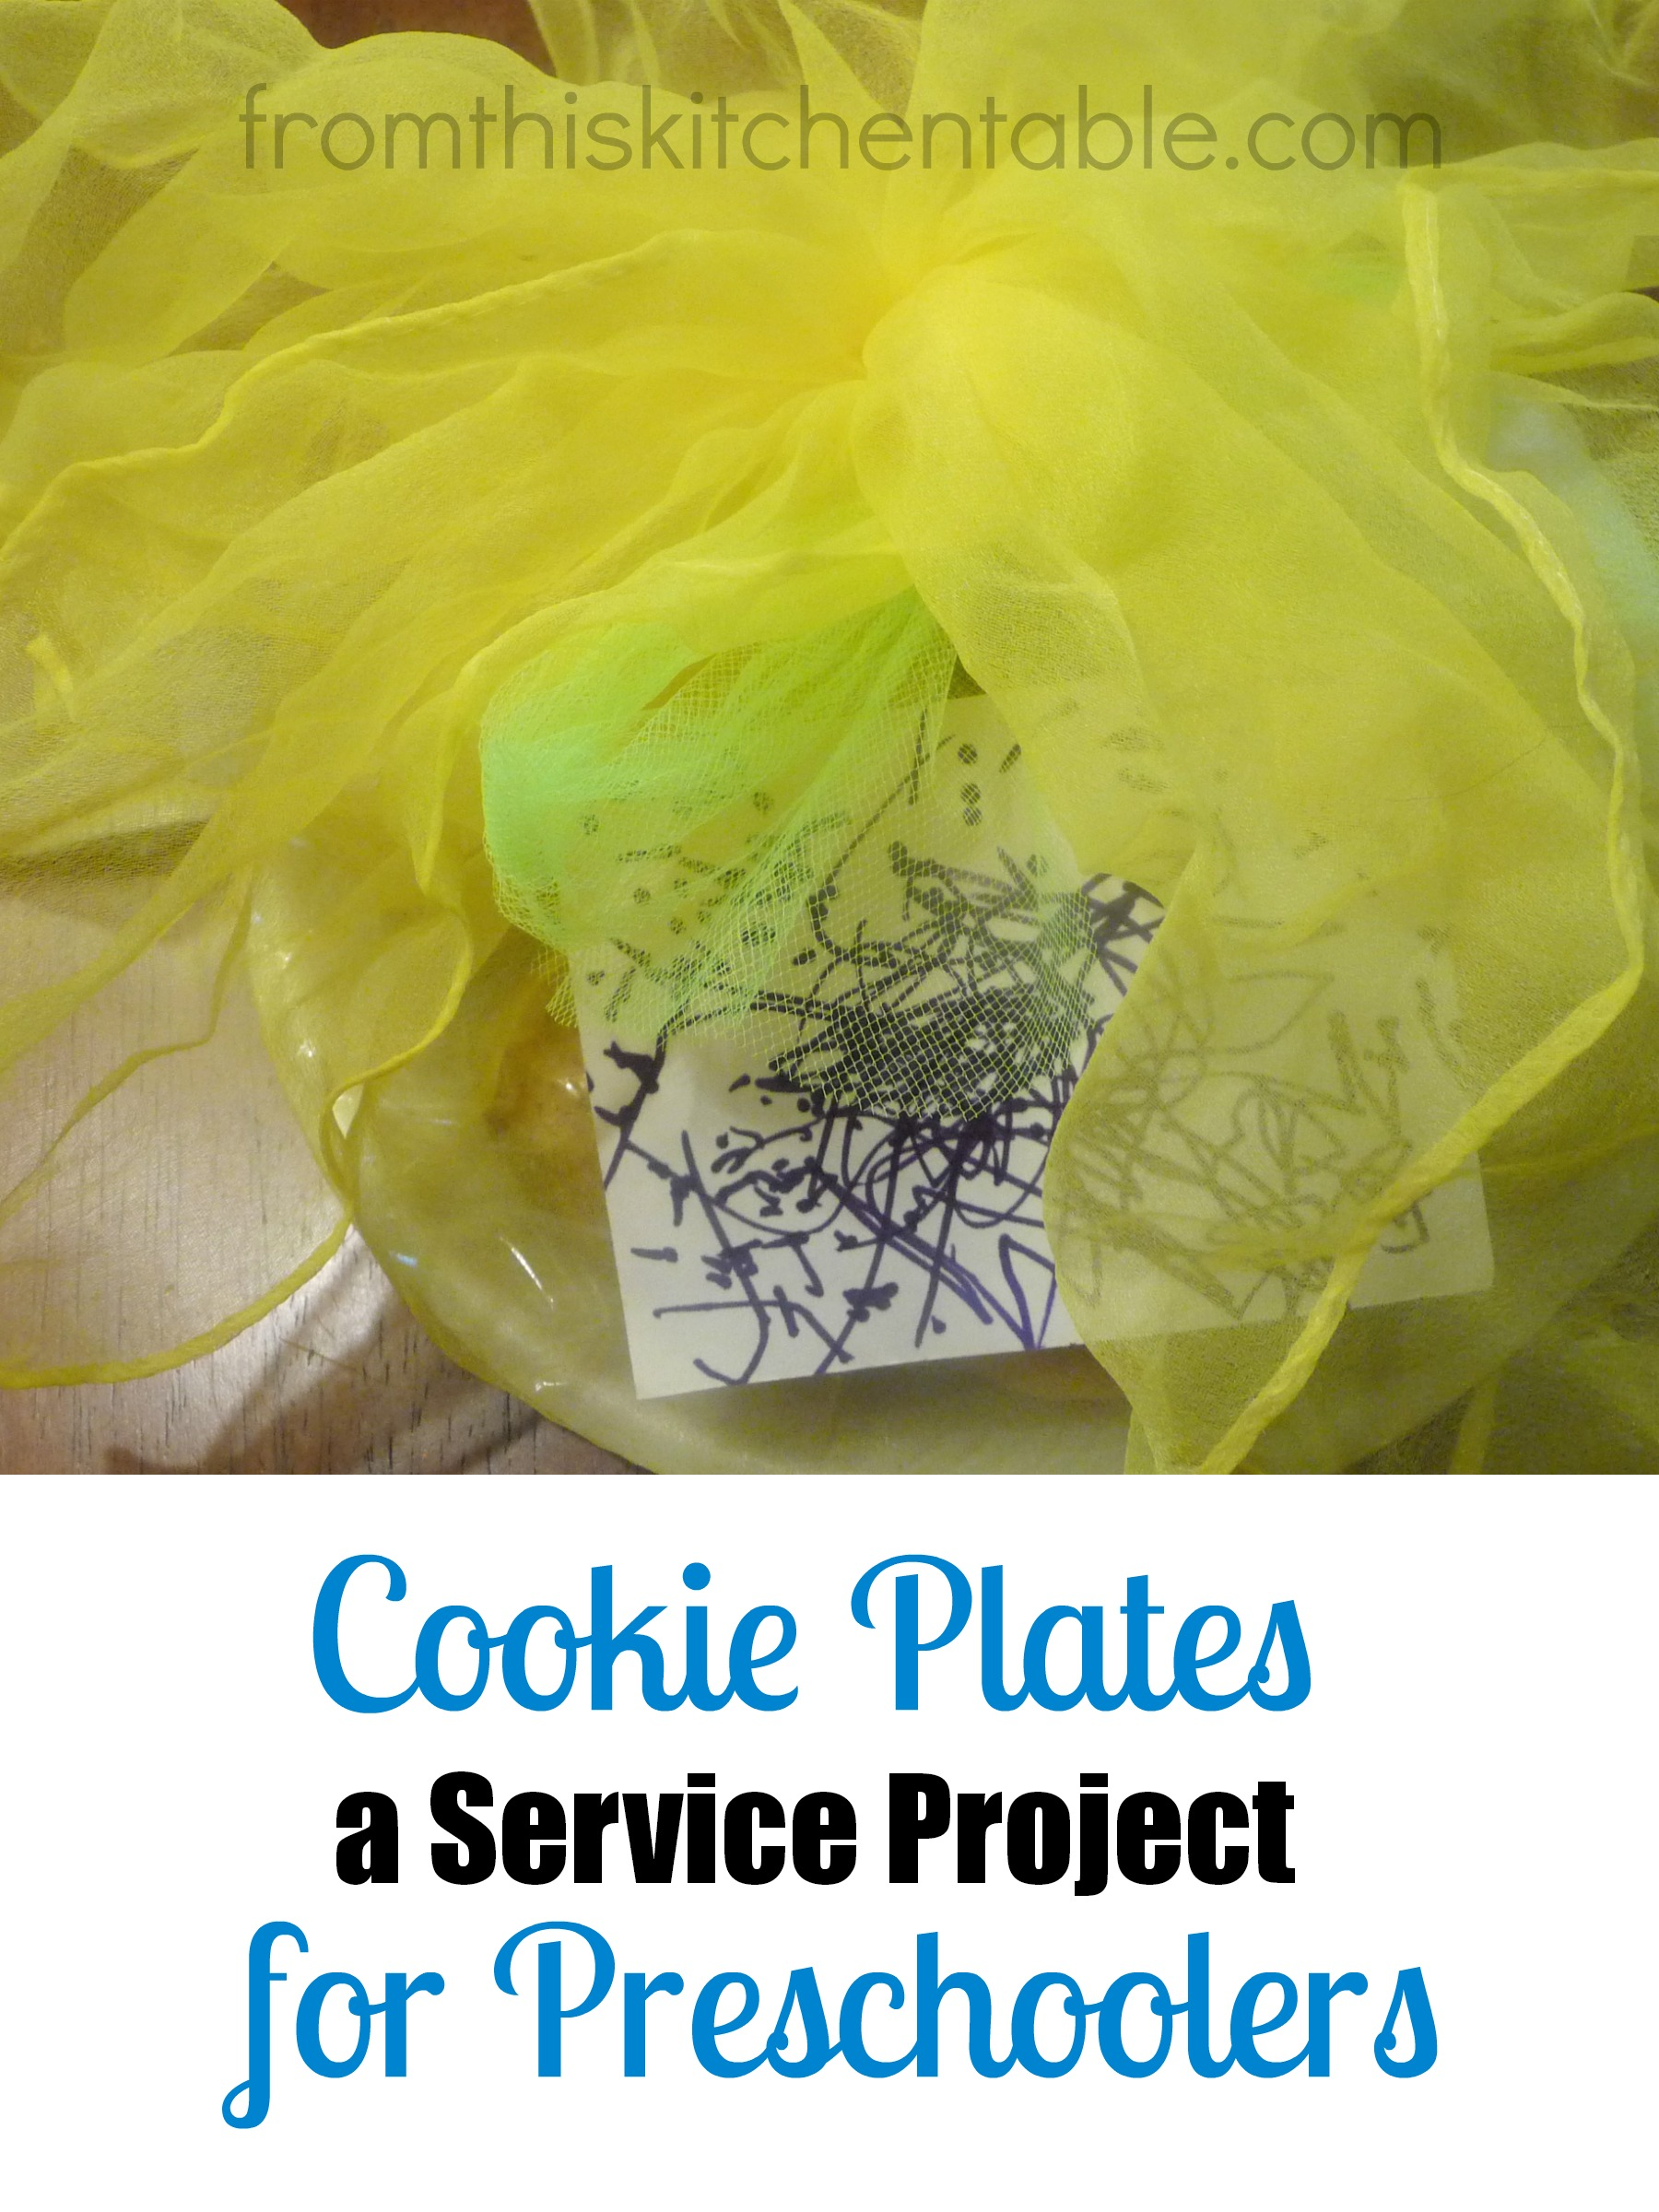 Cooker Plates Graphic